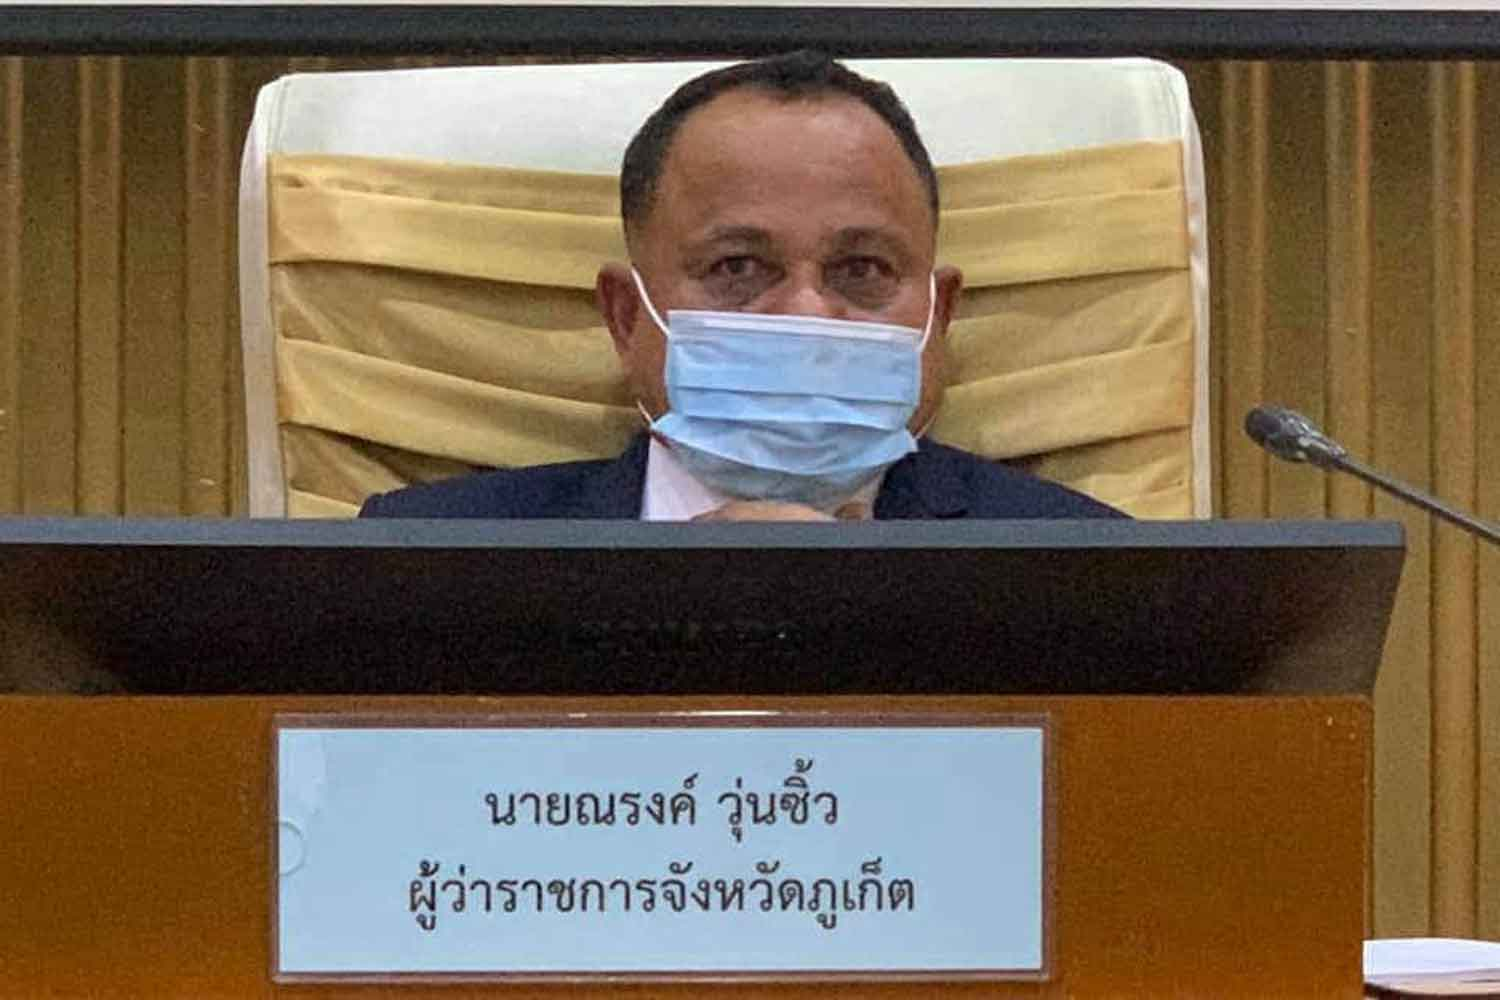 Phuket governor Narong Woonciew at Tuesday's press conference on the latest Covid-19 prevention measures.